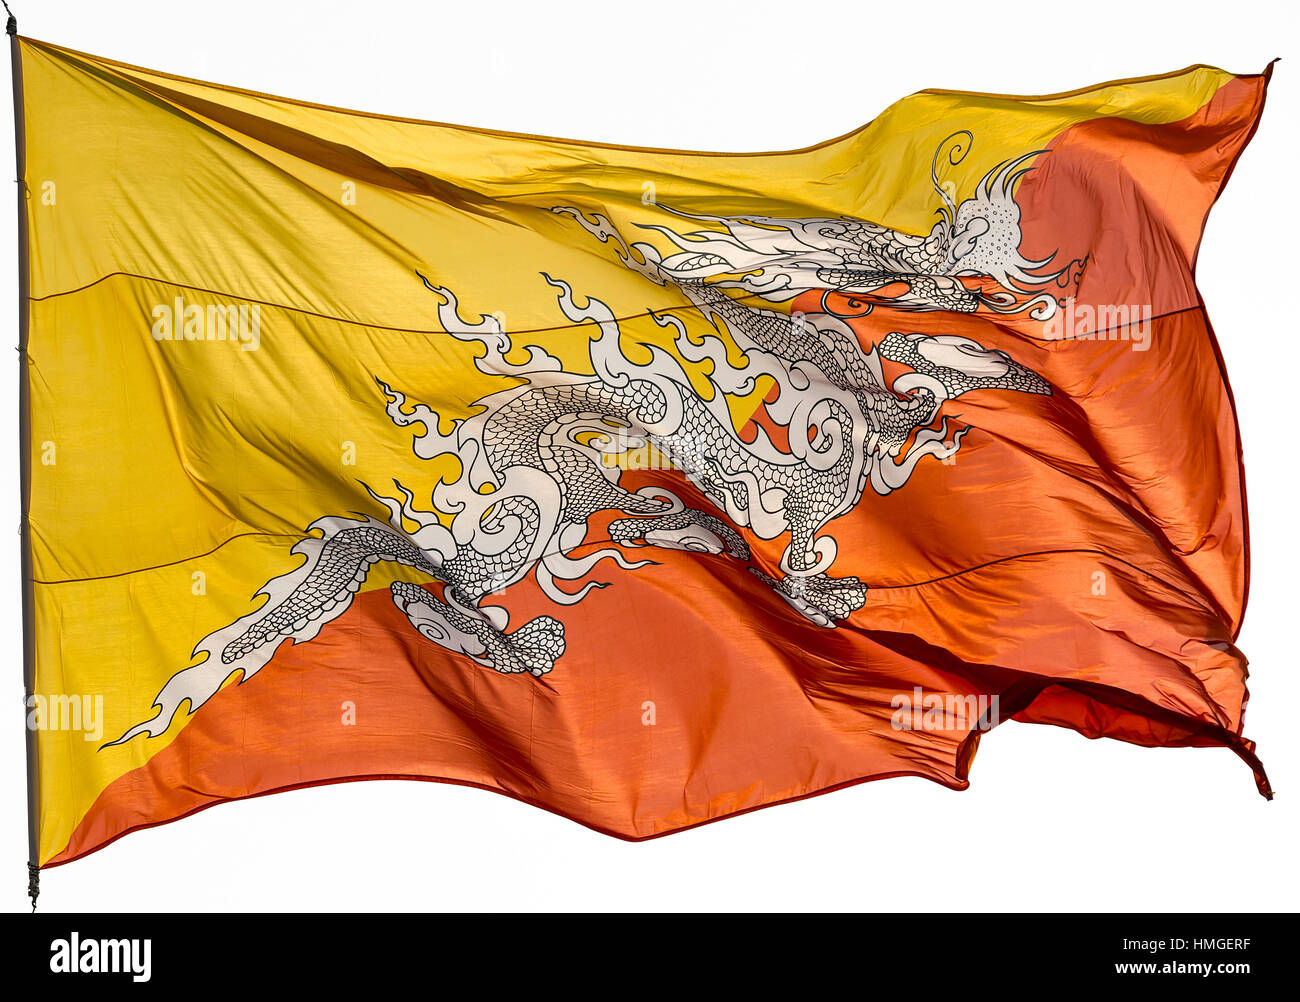 Bhutan National Flag Stock Photos Bhutan National Flag Stock